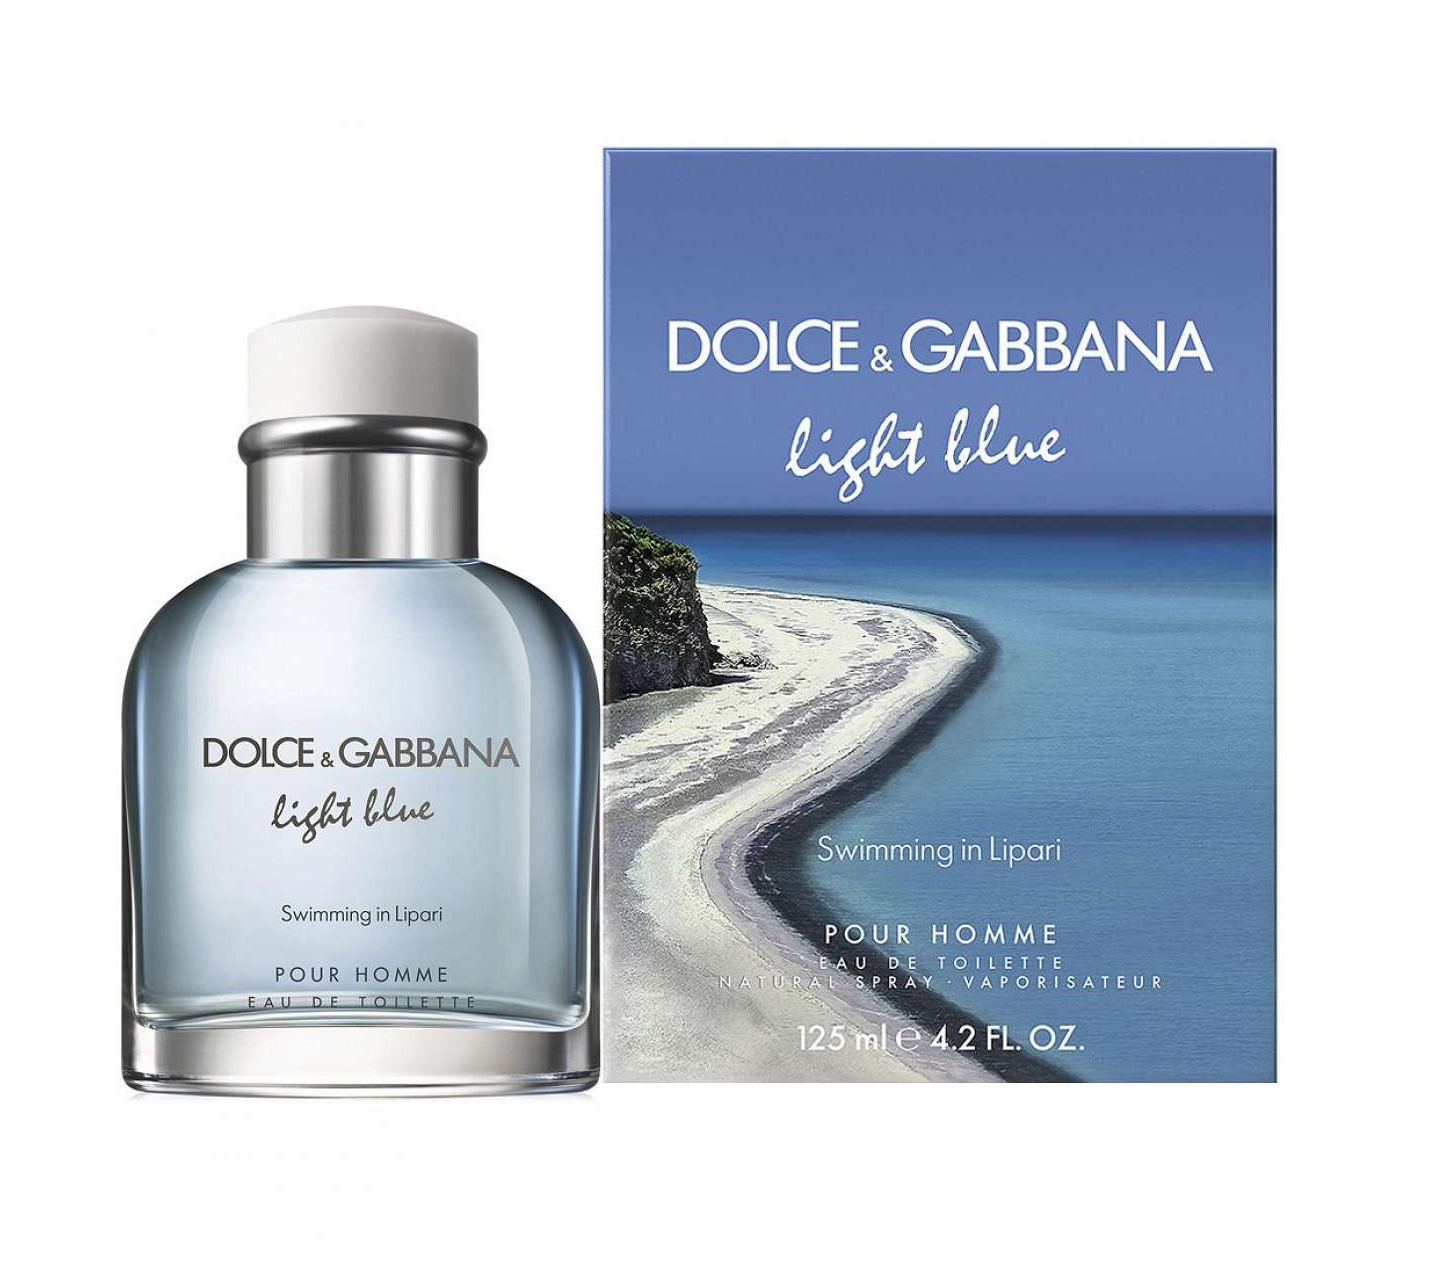 cfc4aca9a1573 Details about LIGHT BLUE Swimming In Lipari Dolce   Gabbana 4.2 oz EDT  spray Men Cologne 125ml